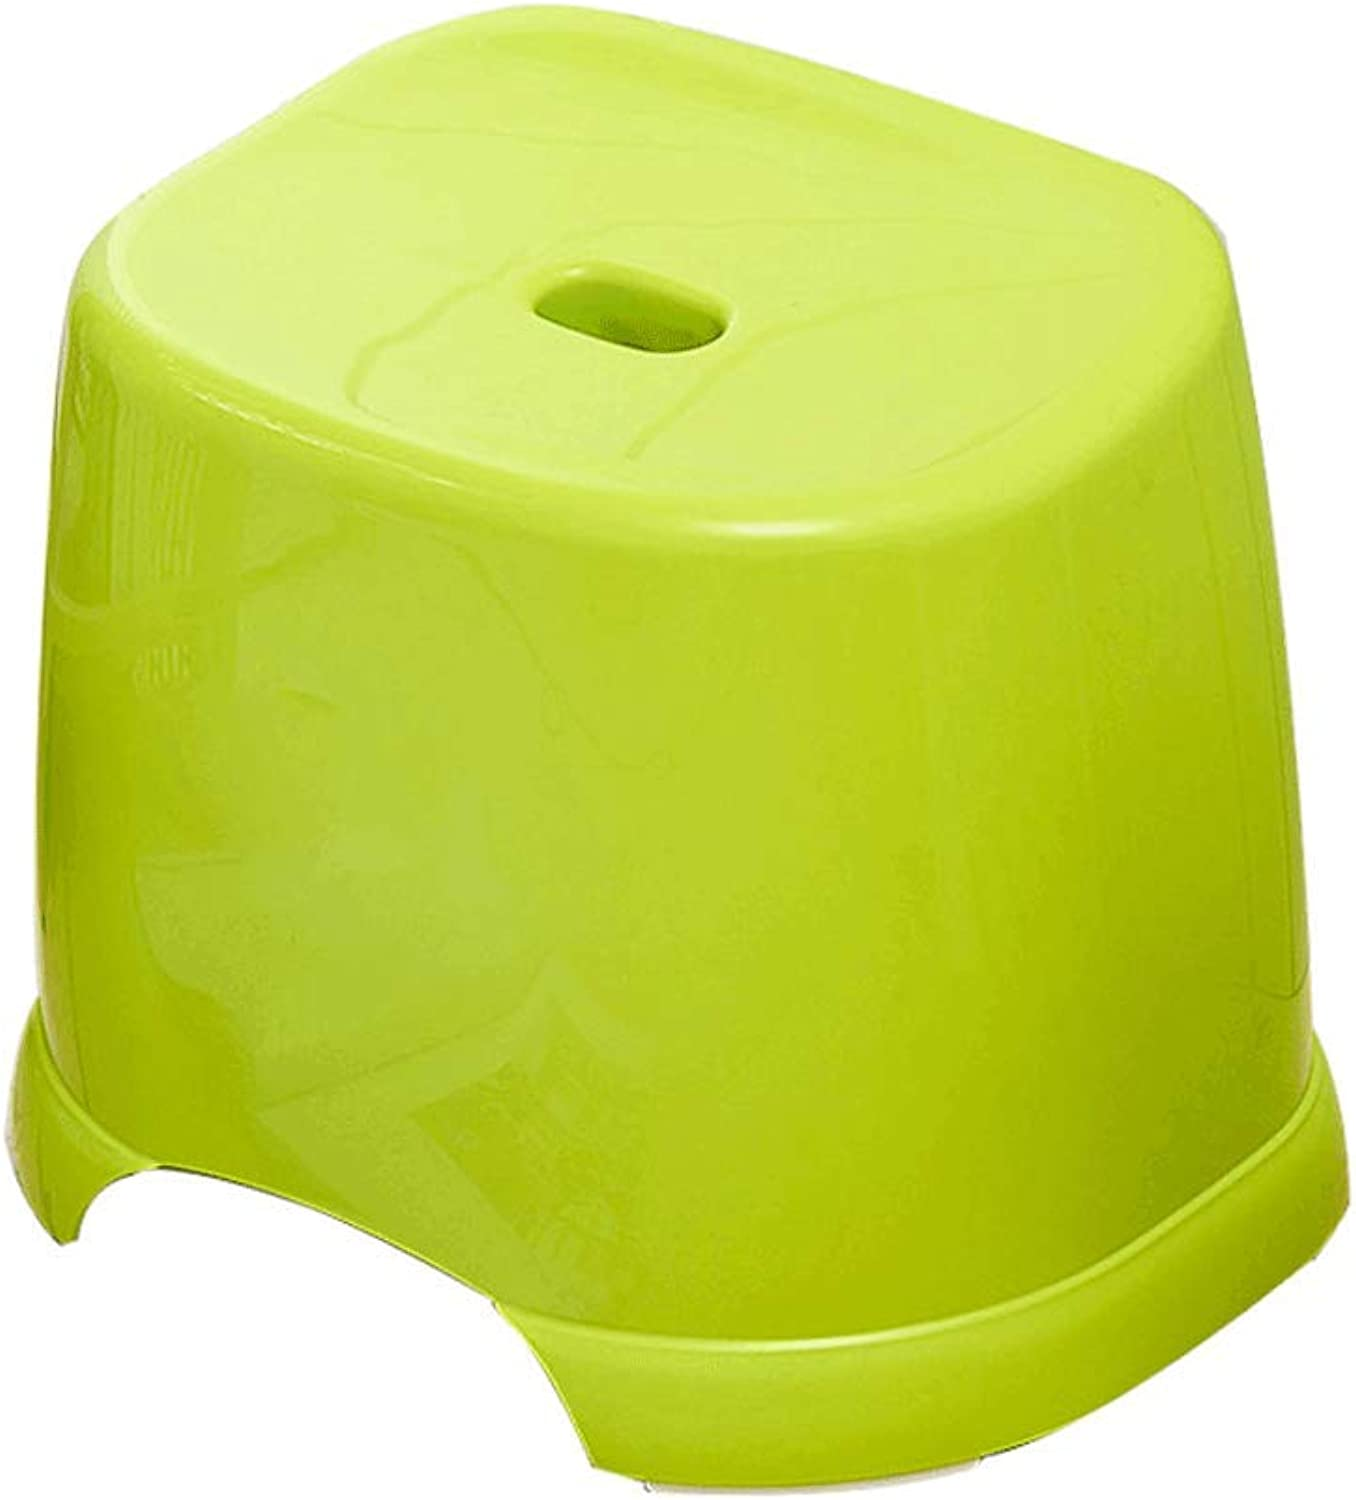 Thicken Bathroom Anti-Slip Stool, Plastic Laundry Living Room Tea Table Green Stool